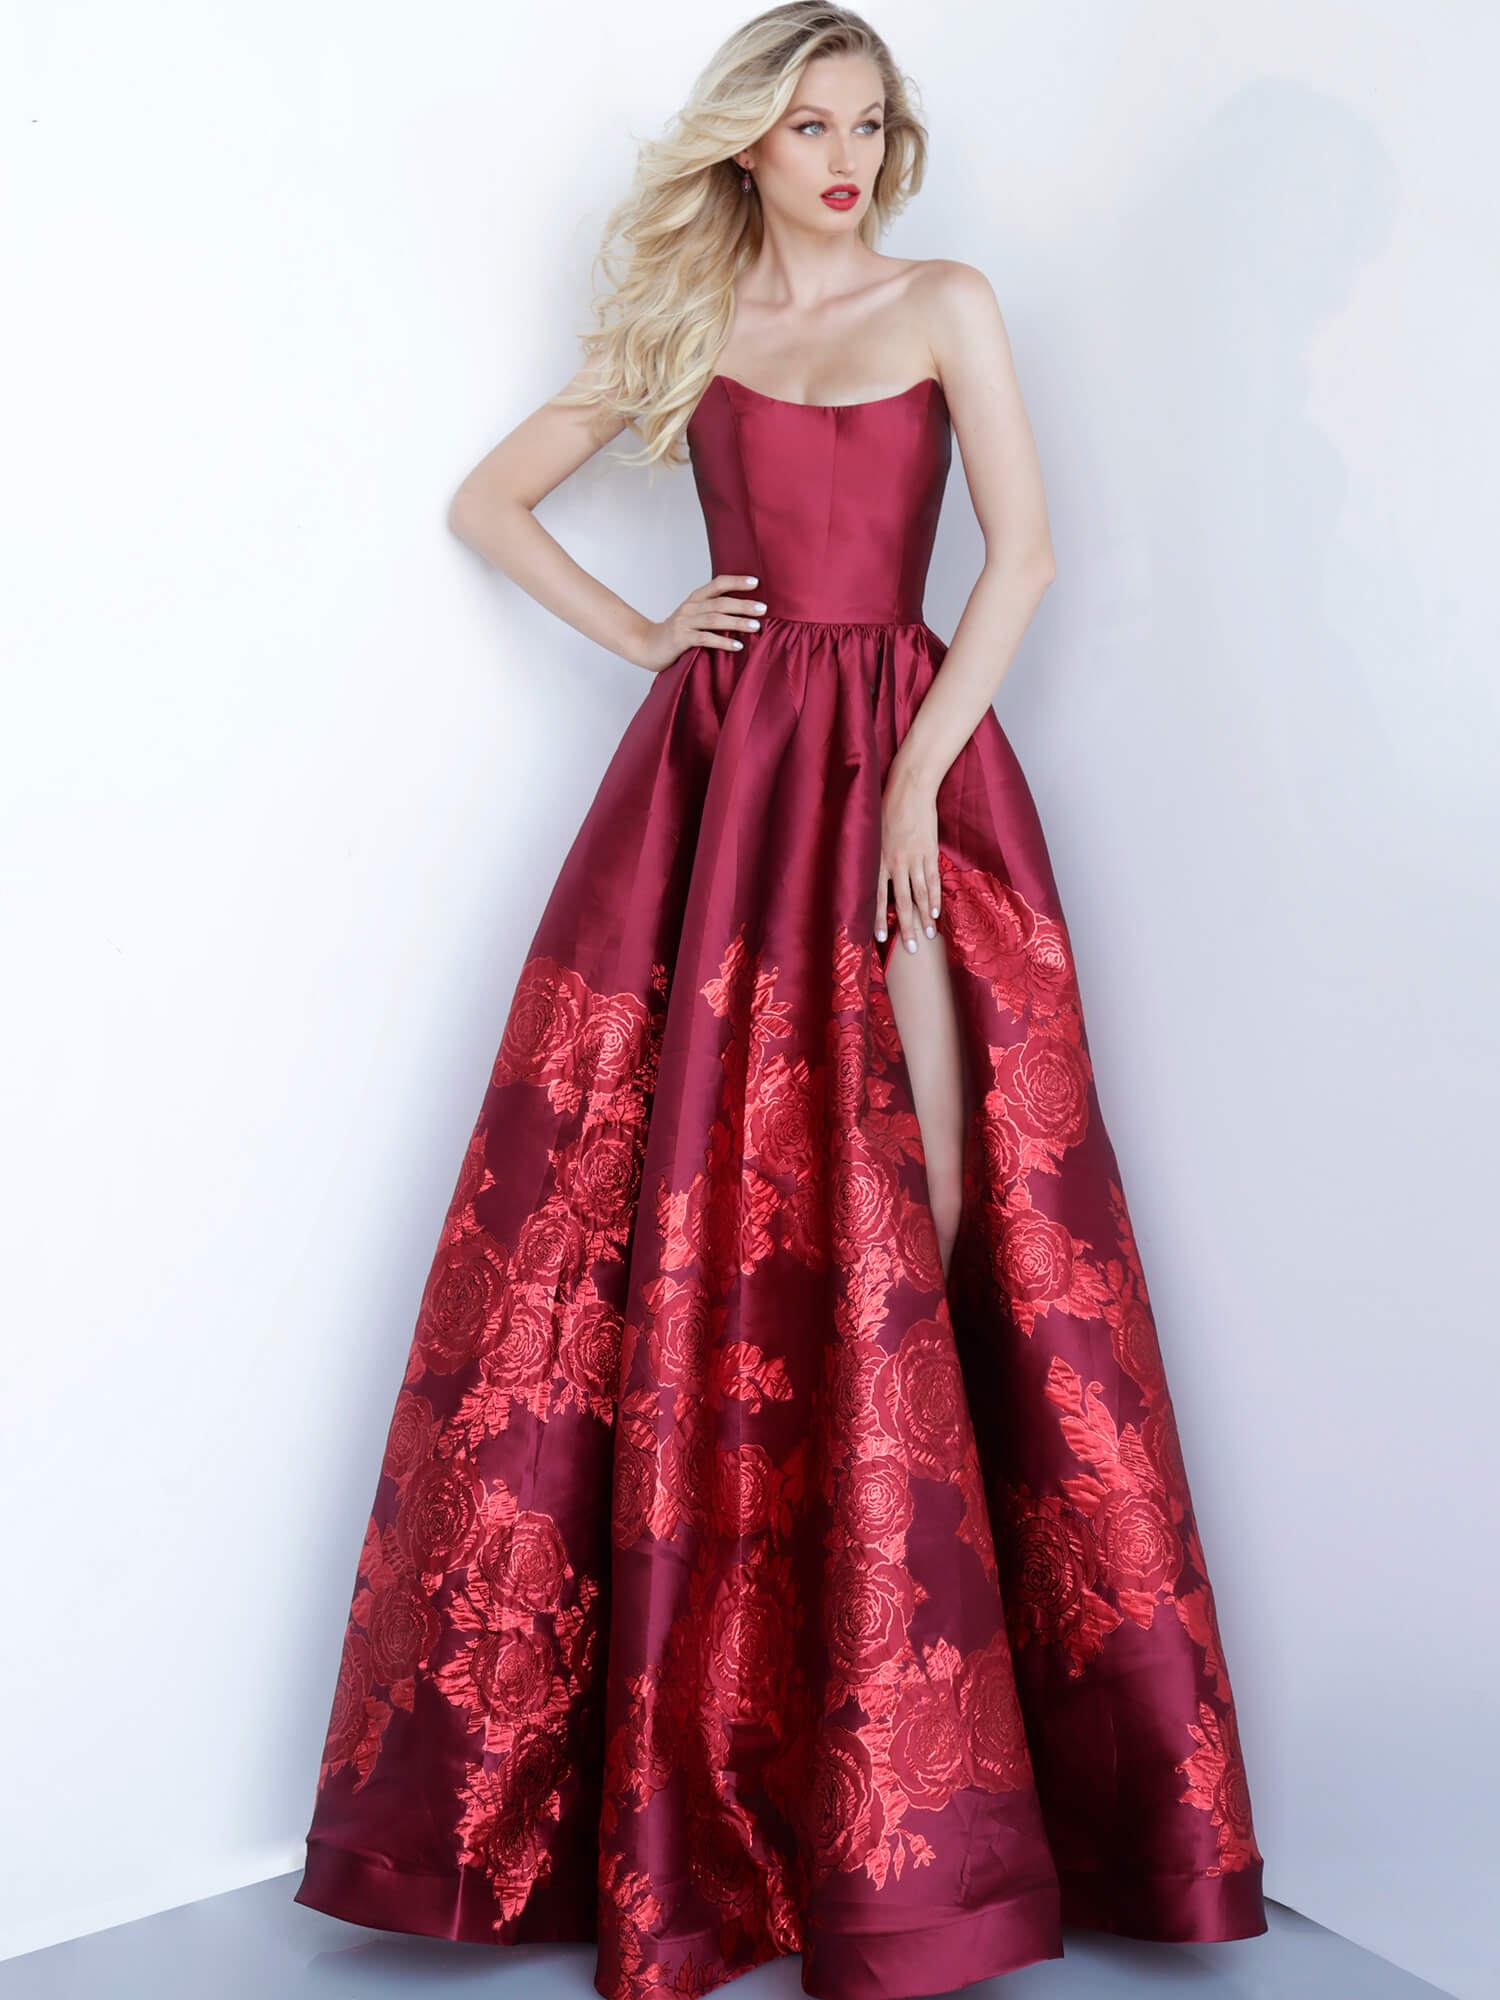 Jovani Red Strapless Floral Gown - Gissings Boutique